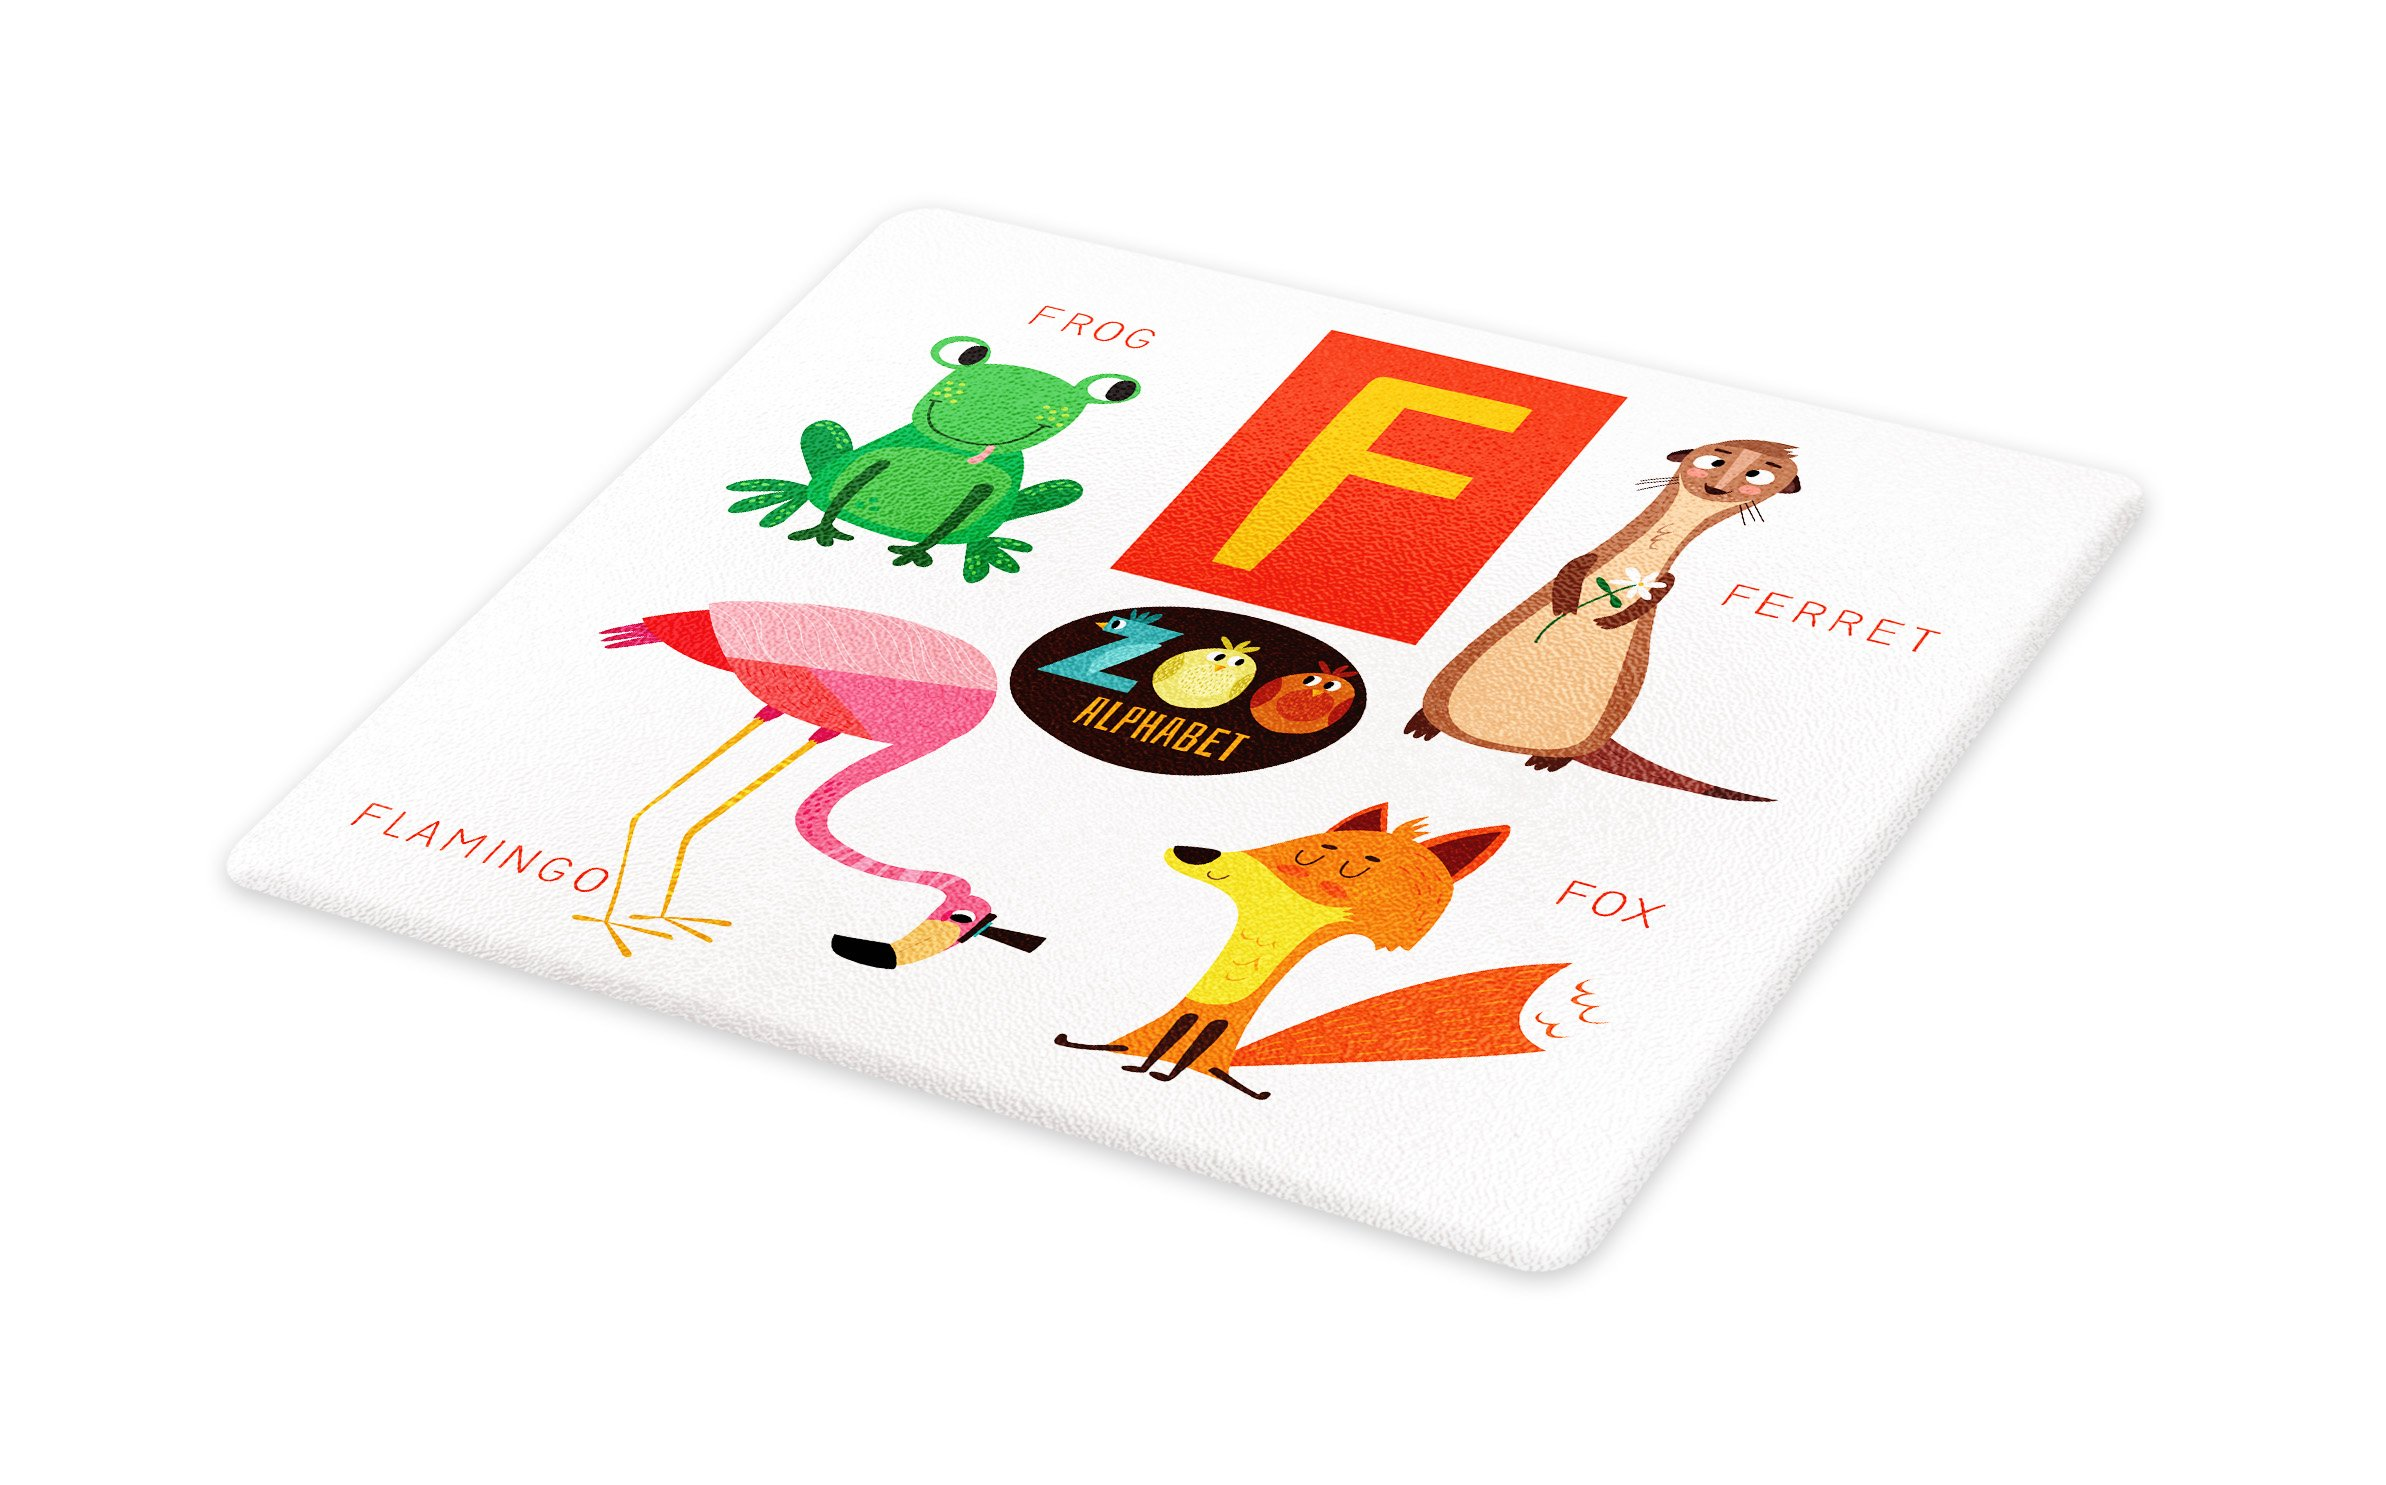 Lunarable ABC Kids Cutting Board, Primary School Students Learn ABC Artwork for F Font with Flamingo Fox Frog Ferret, Decorative Tempered Glass Cutting and Serving Board, Large Size, Multicolor